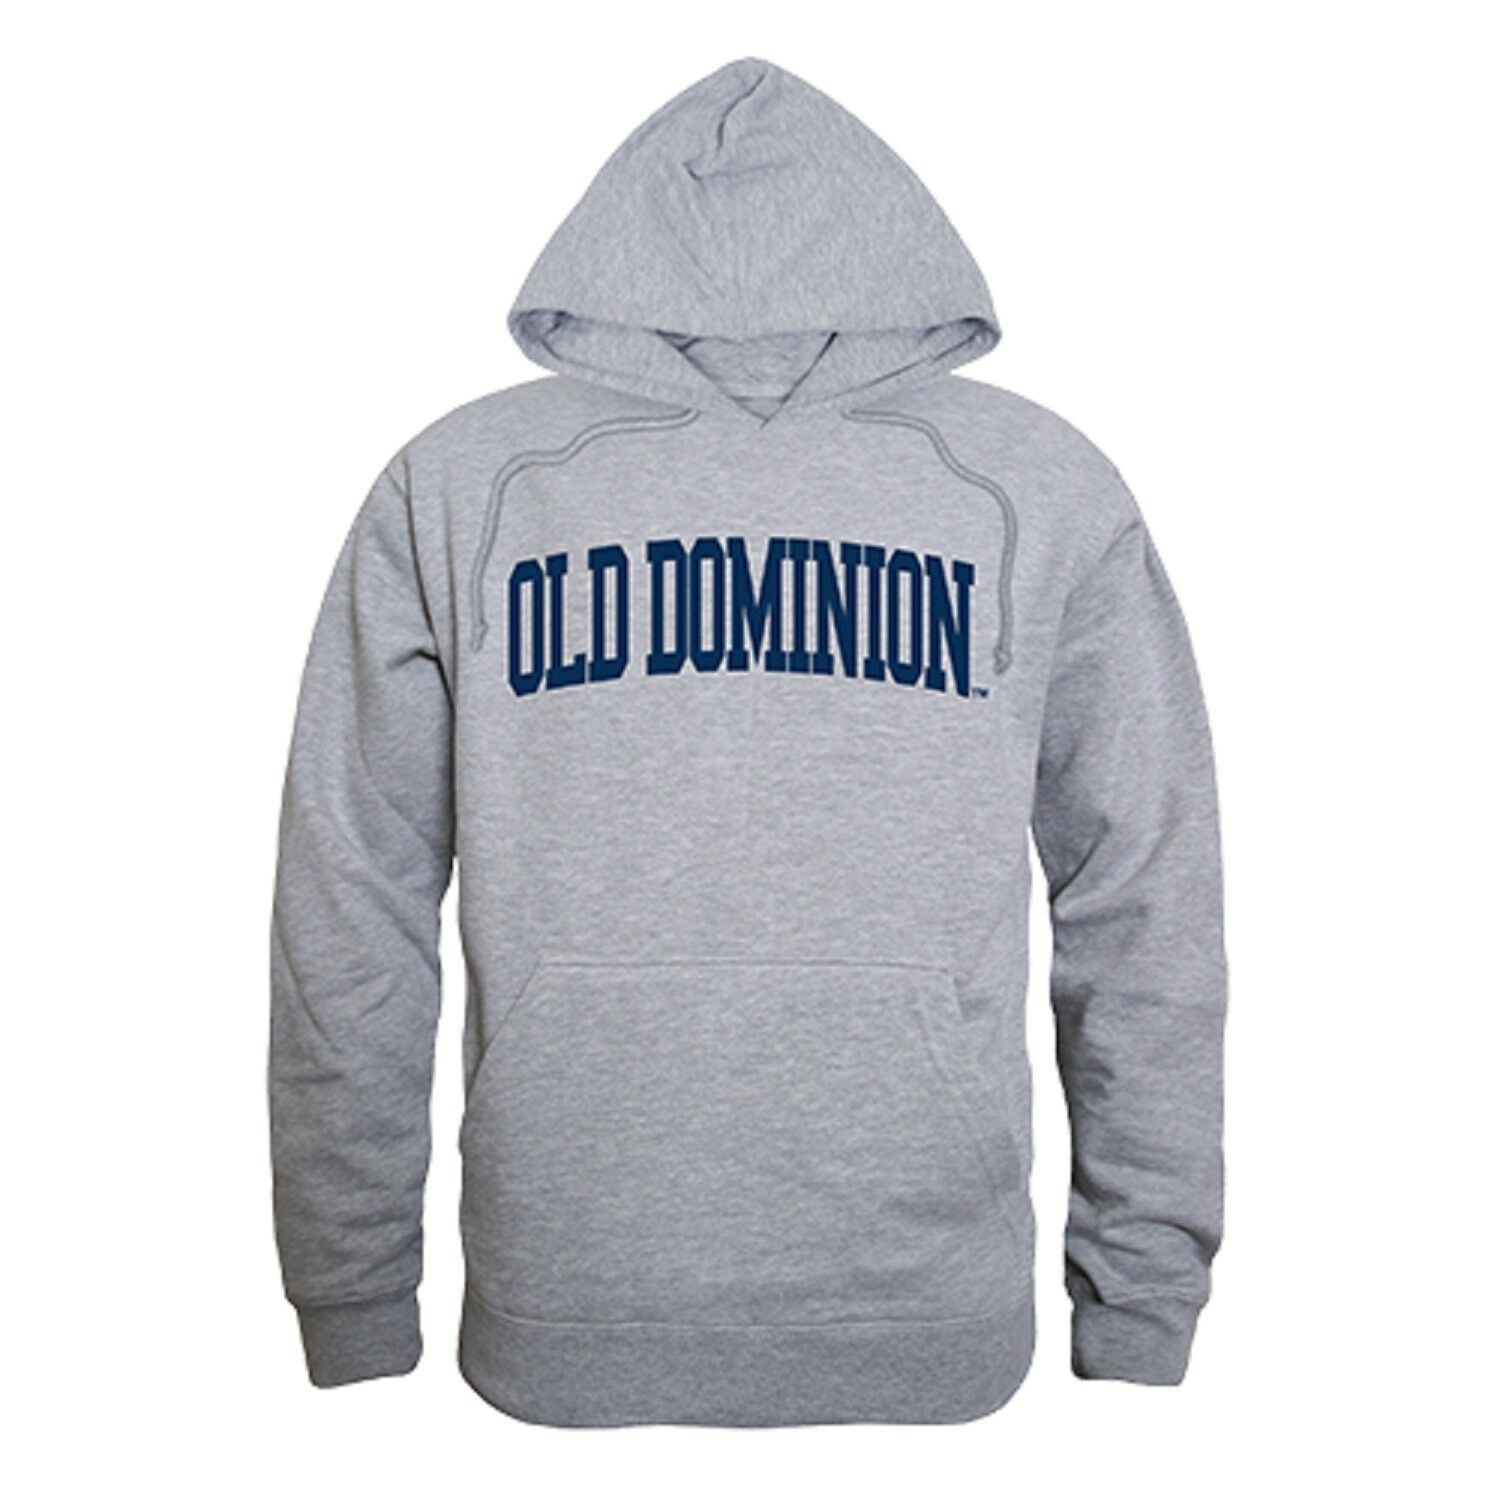 Old Dominion University Monarchs NCAA Sweatshirt S M L XL 2XL